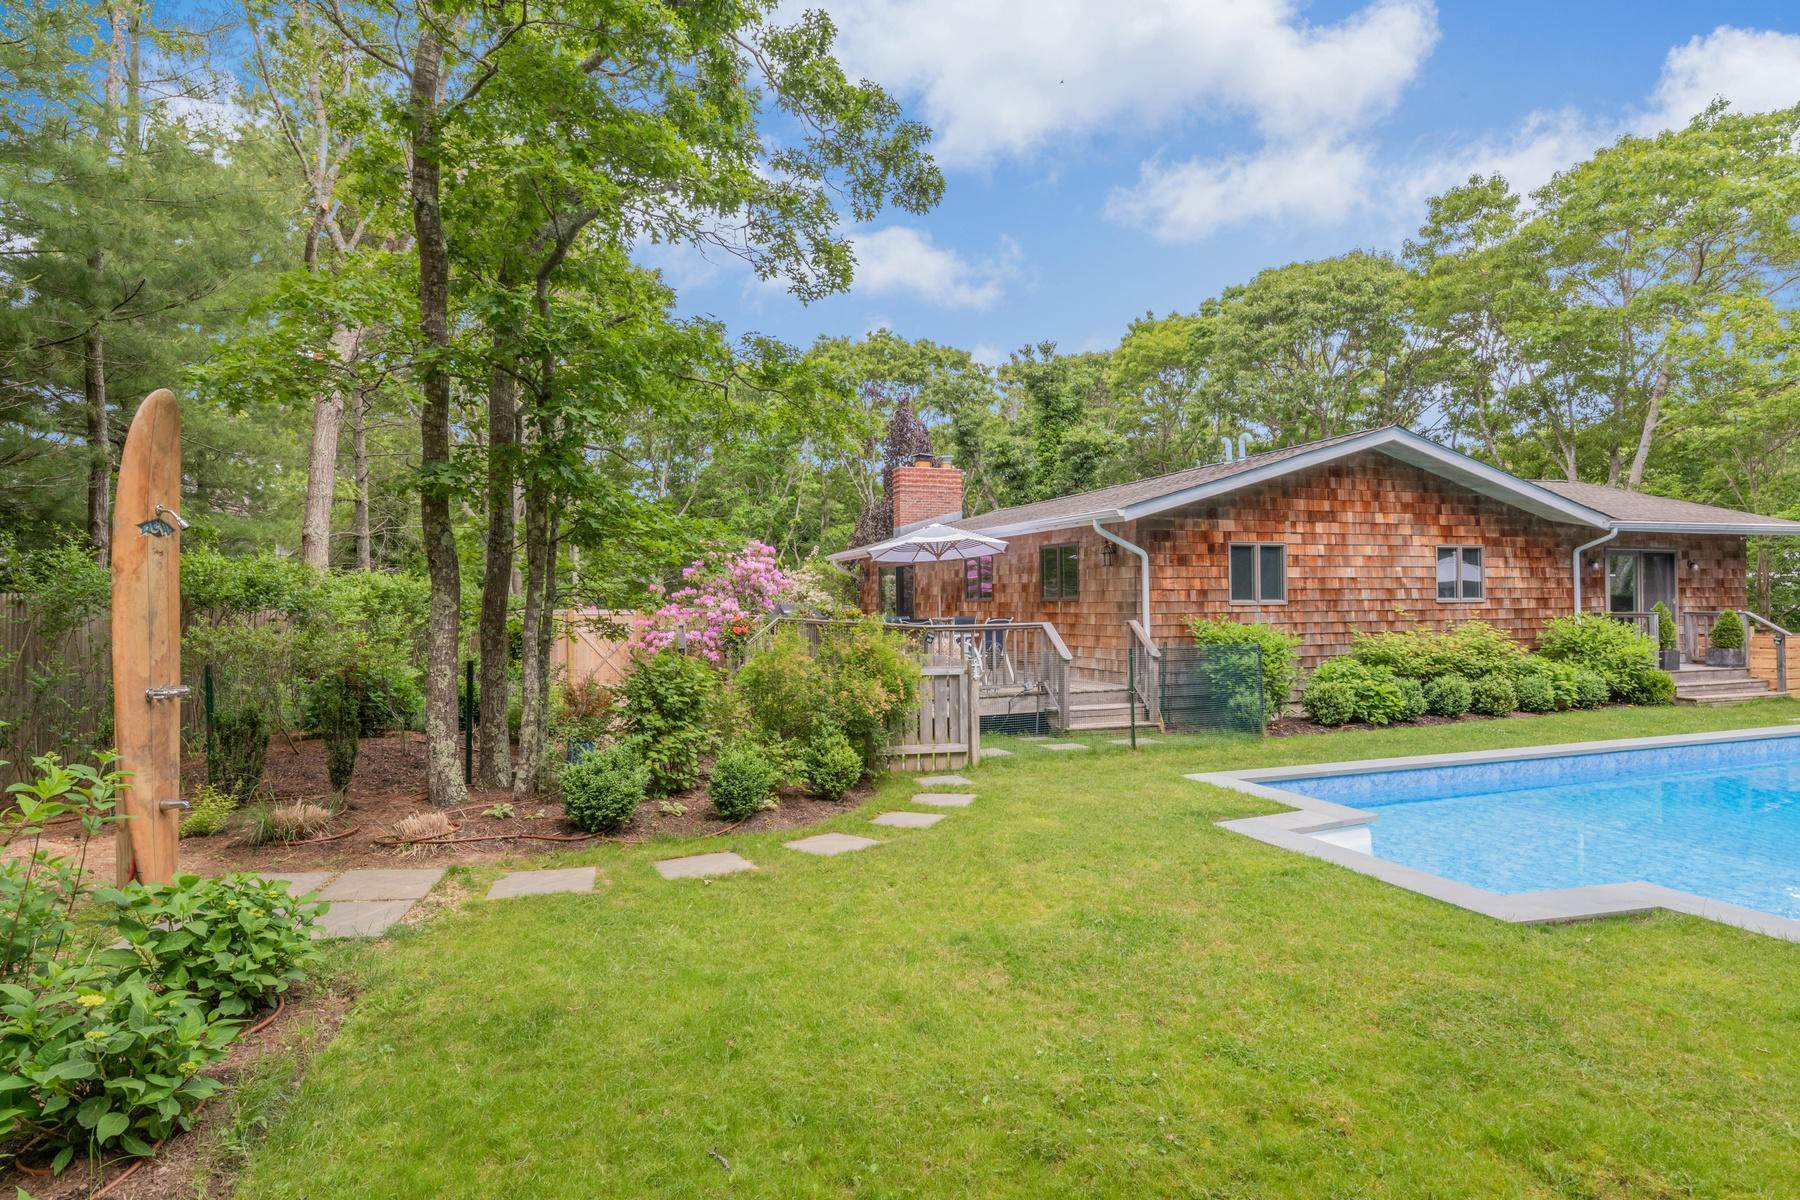 2. Single Family Home at East Hampton House On Elevated Site In The Woods 27 Cosdrew Lane, East Hampton, NY 11937